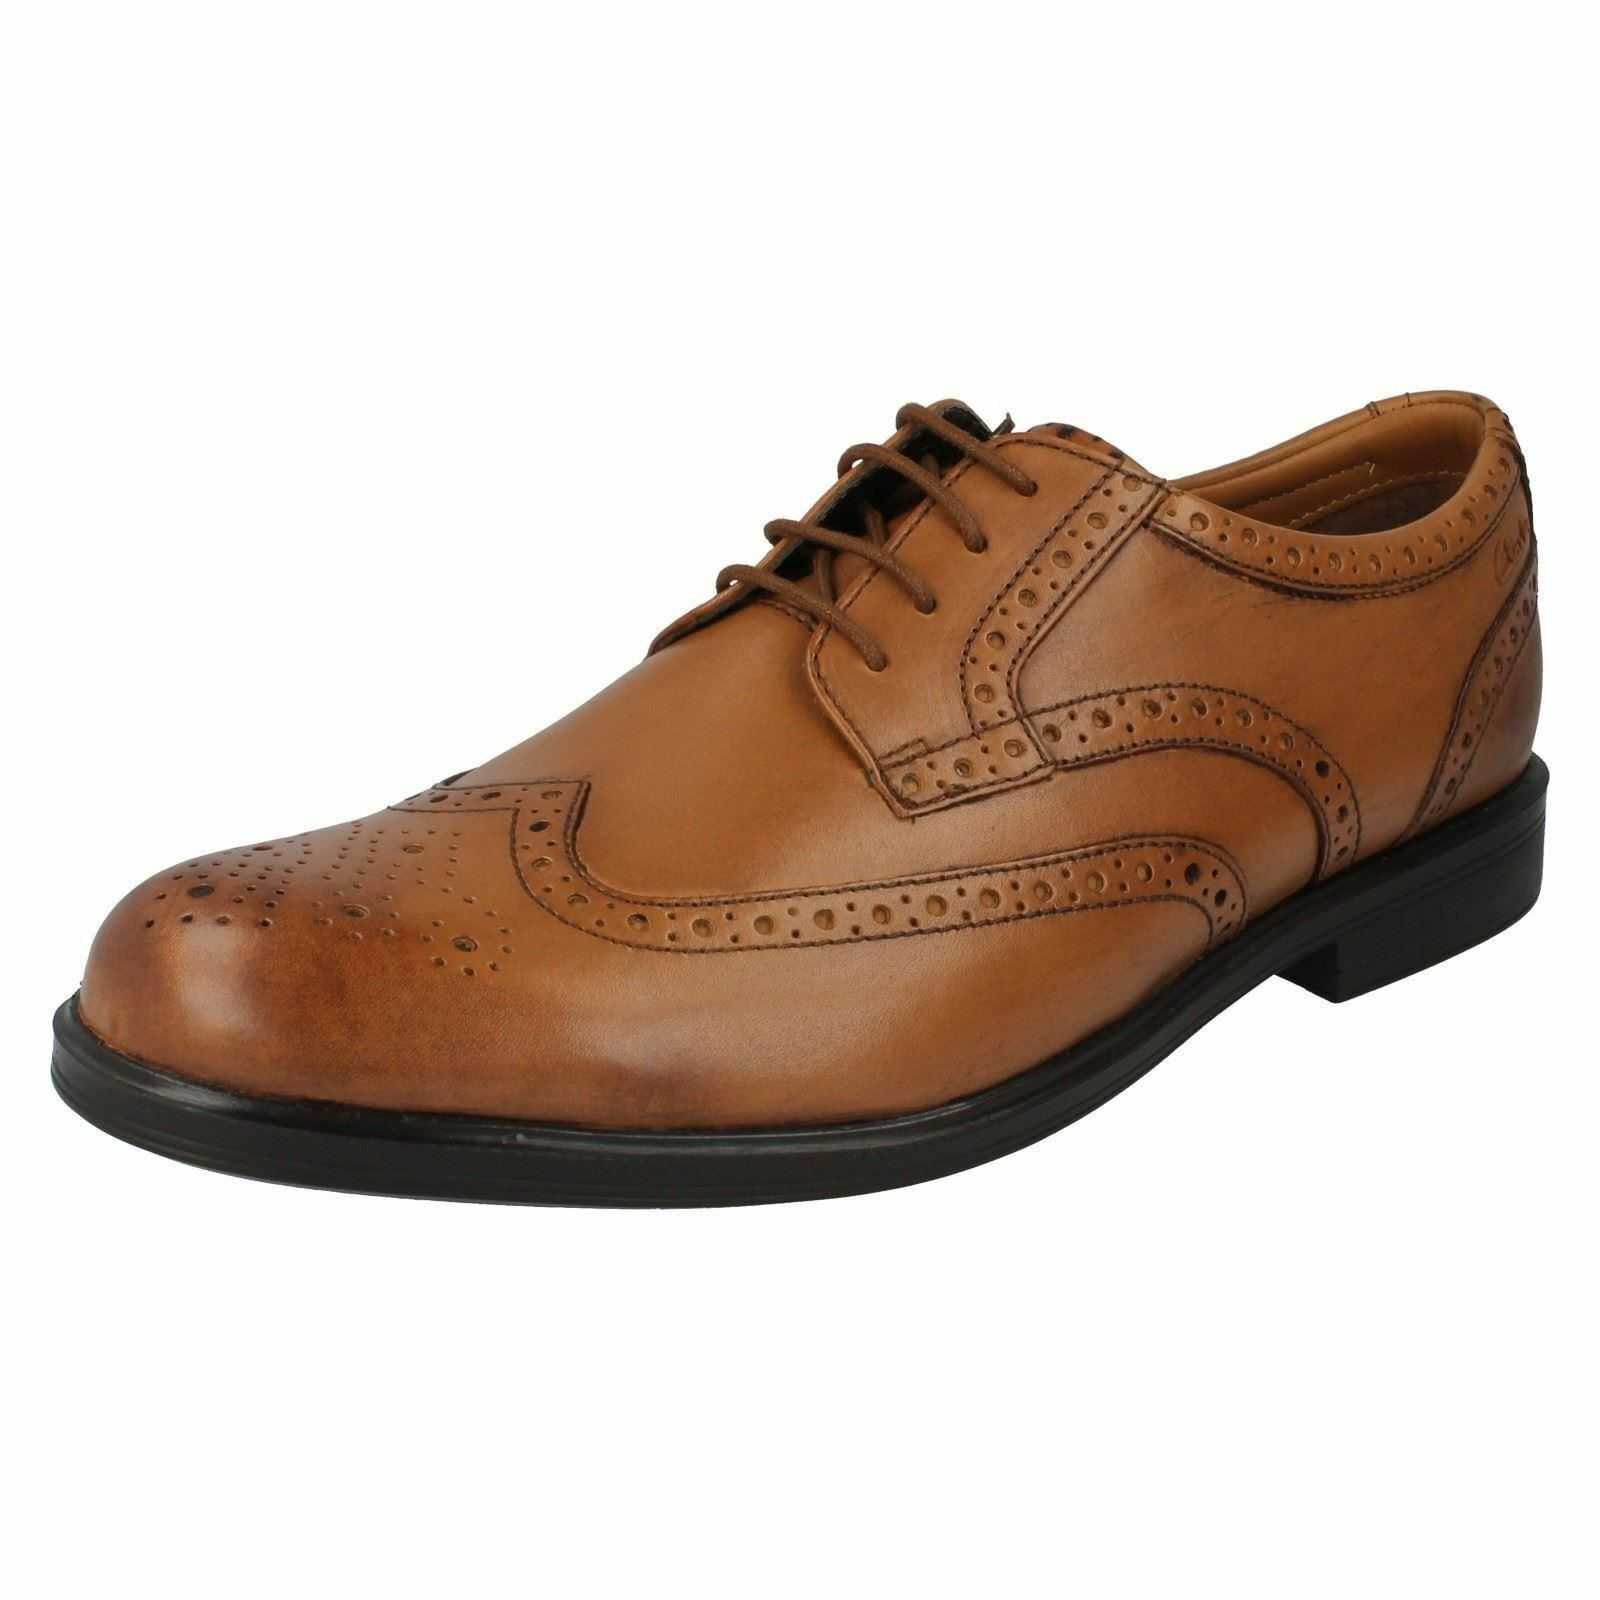 GABSON LIMIT MENS CLARKS CLASSIC LACE UP LEATHER SIZE BROGUE FORMAL WORK SHOES SIZE LEATHER 172cba